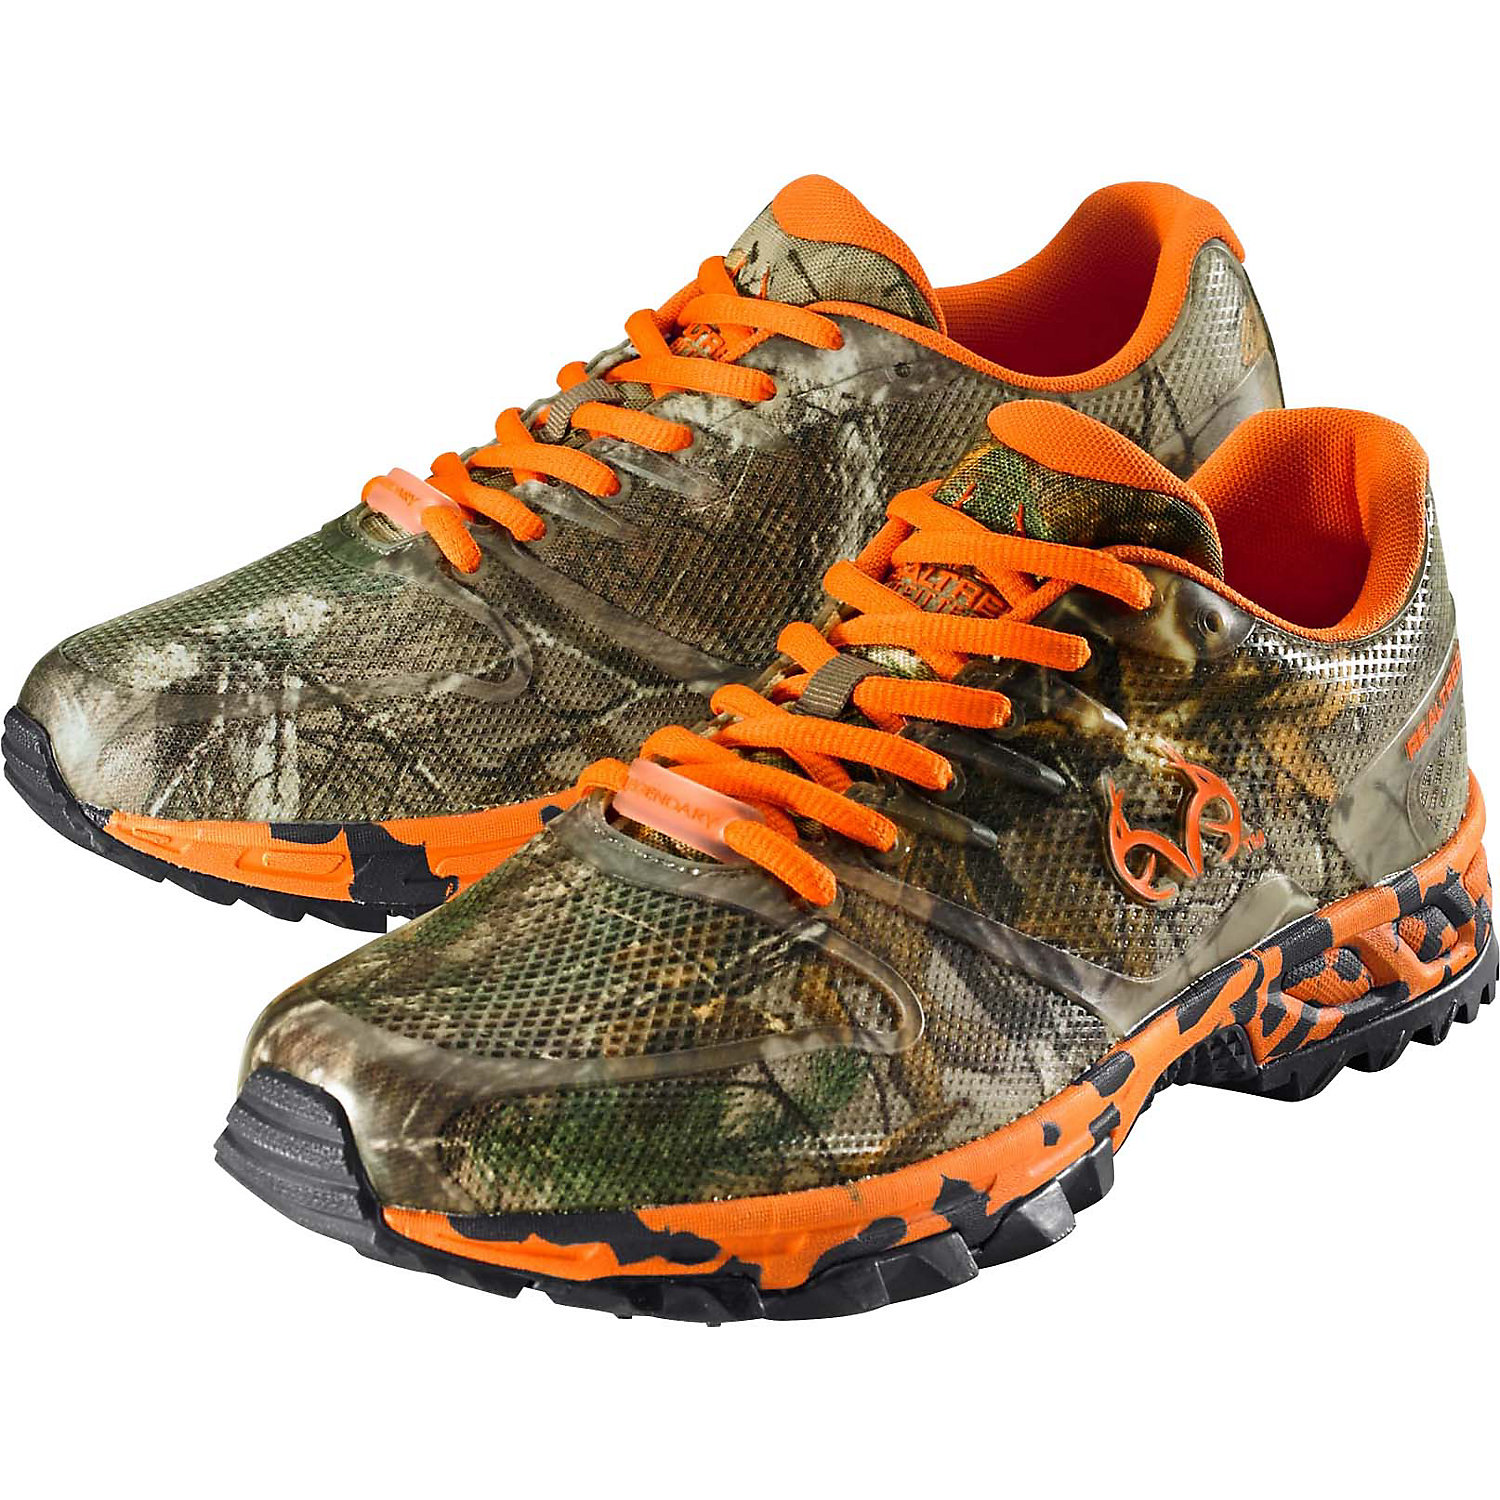 Legendary Whitetails Men's Cobra Ultra Cross Realtree Hiking Shoe